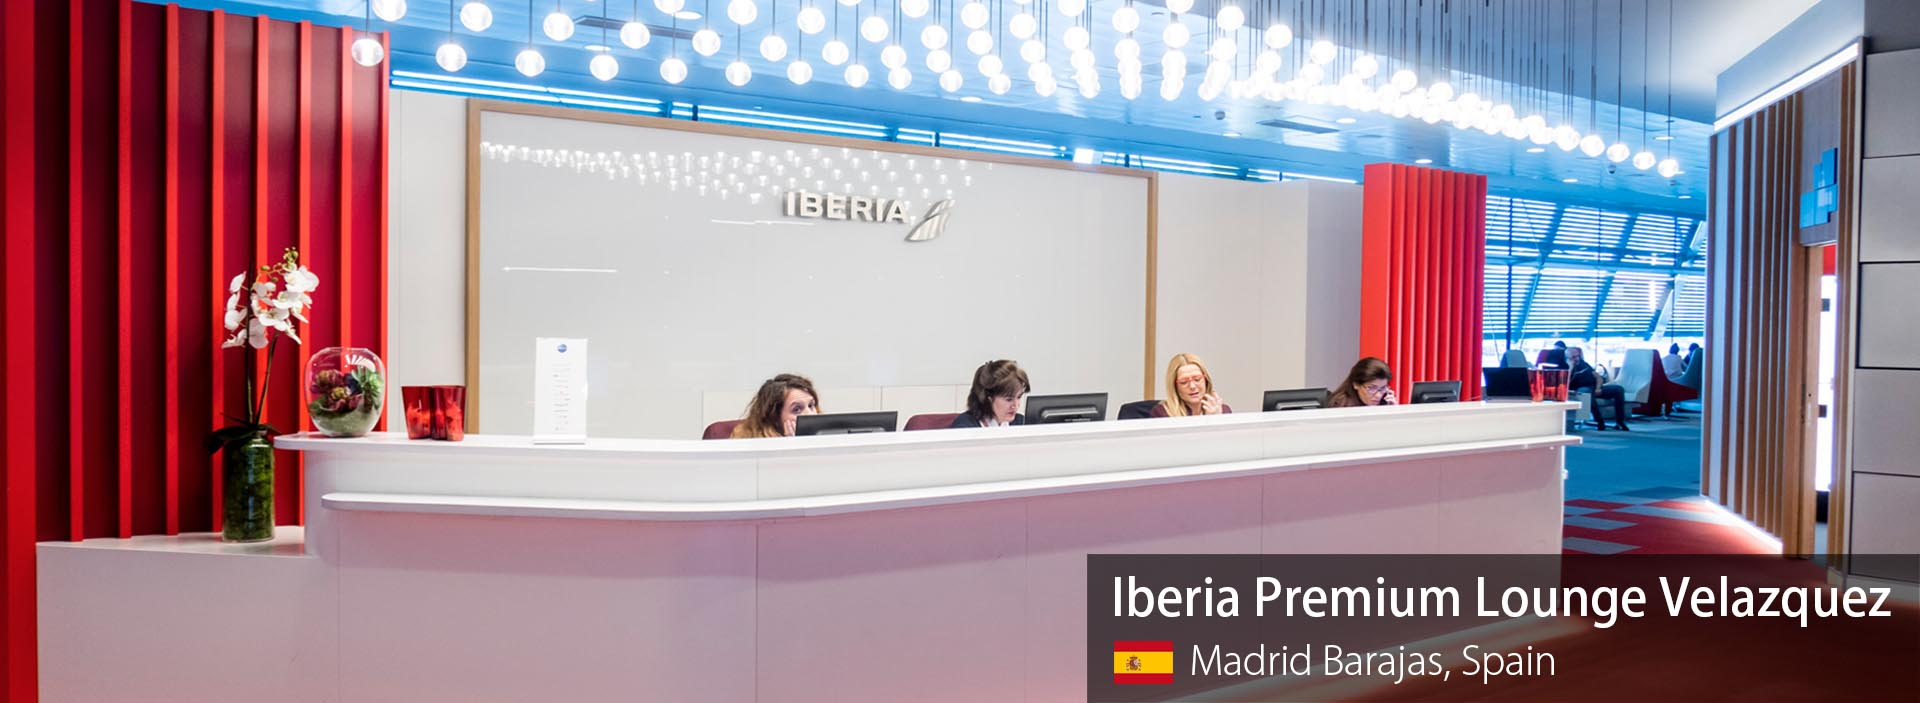 Lounge Review: Iberia Premium Lounge Velazquez at Madrid Barajas